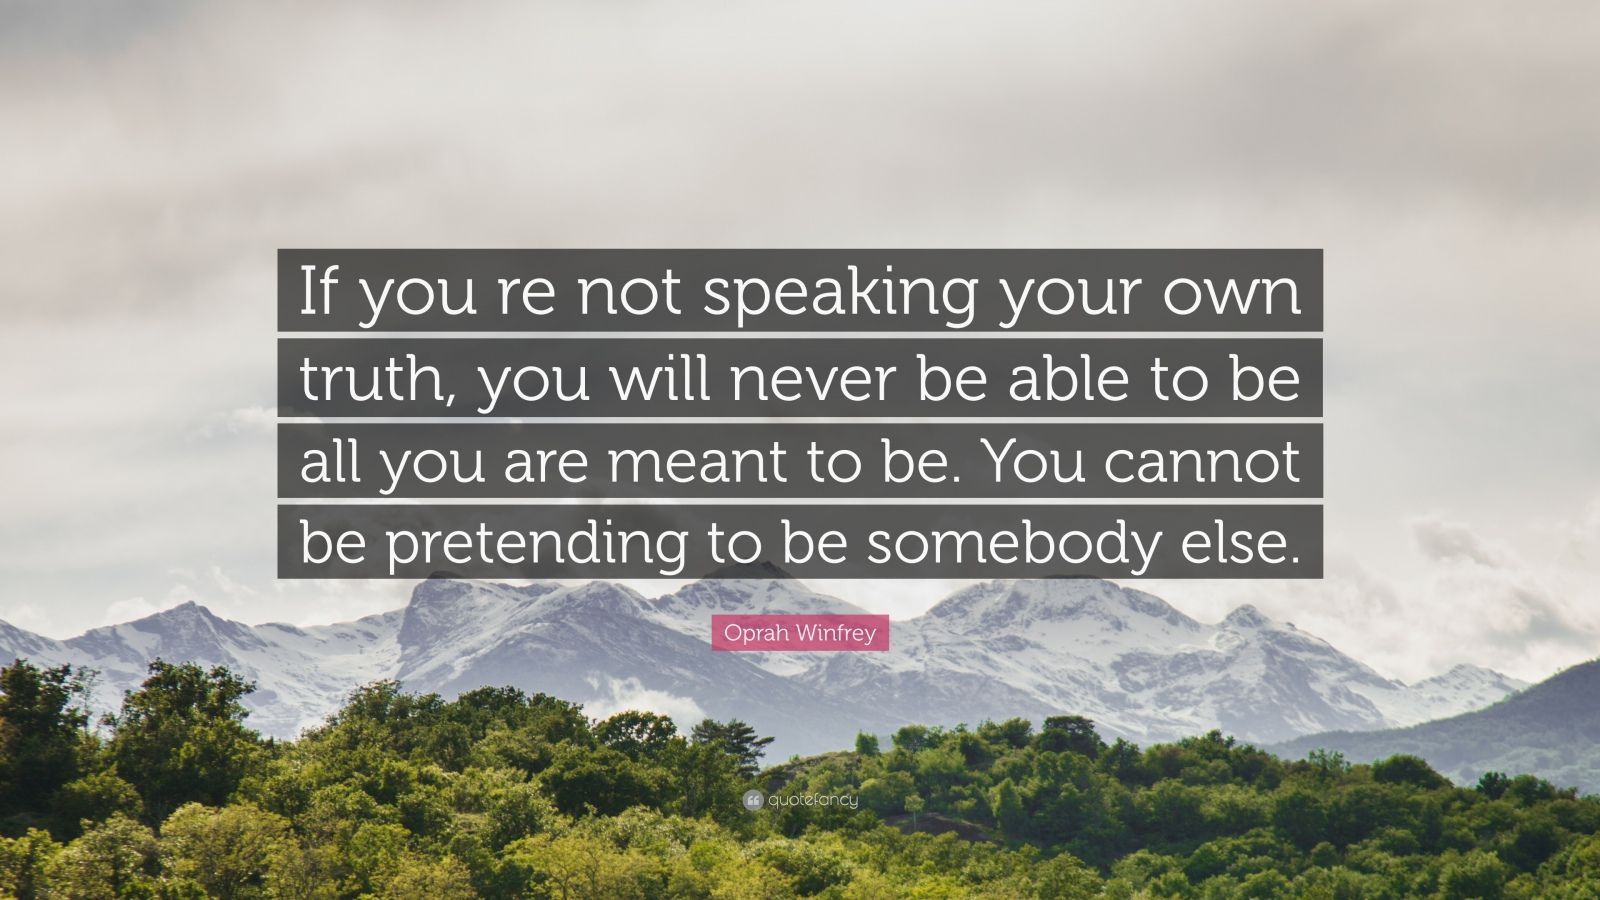 """Oprah Winfrey Quote: """"If you re not speaking your own truth, you will never be able to be all you are meant to be. You cannot be pretending to be somebody else."""""""